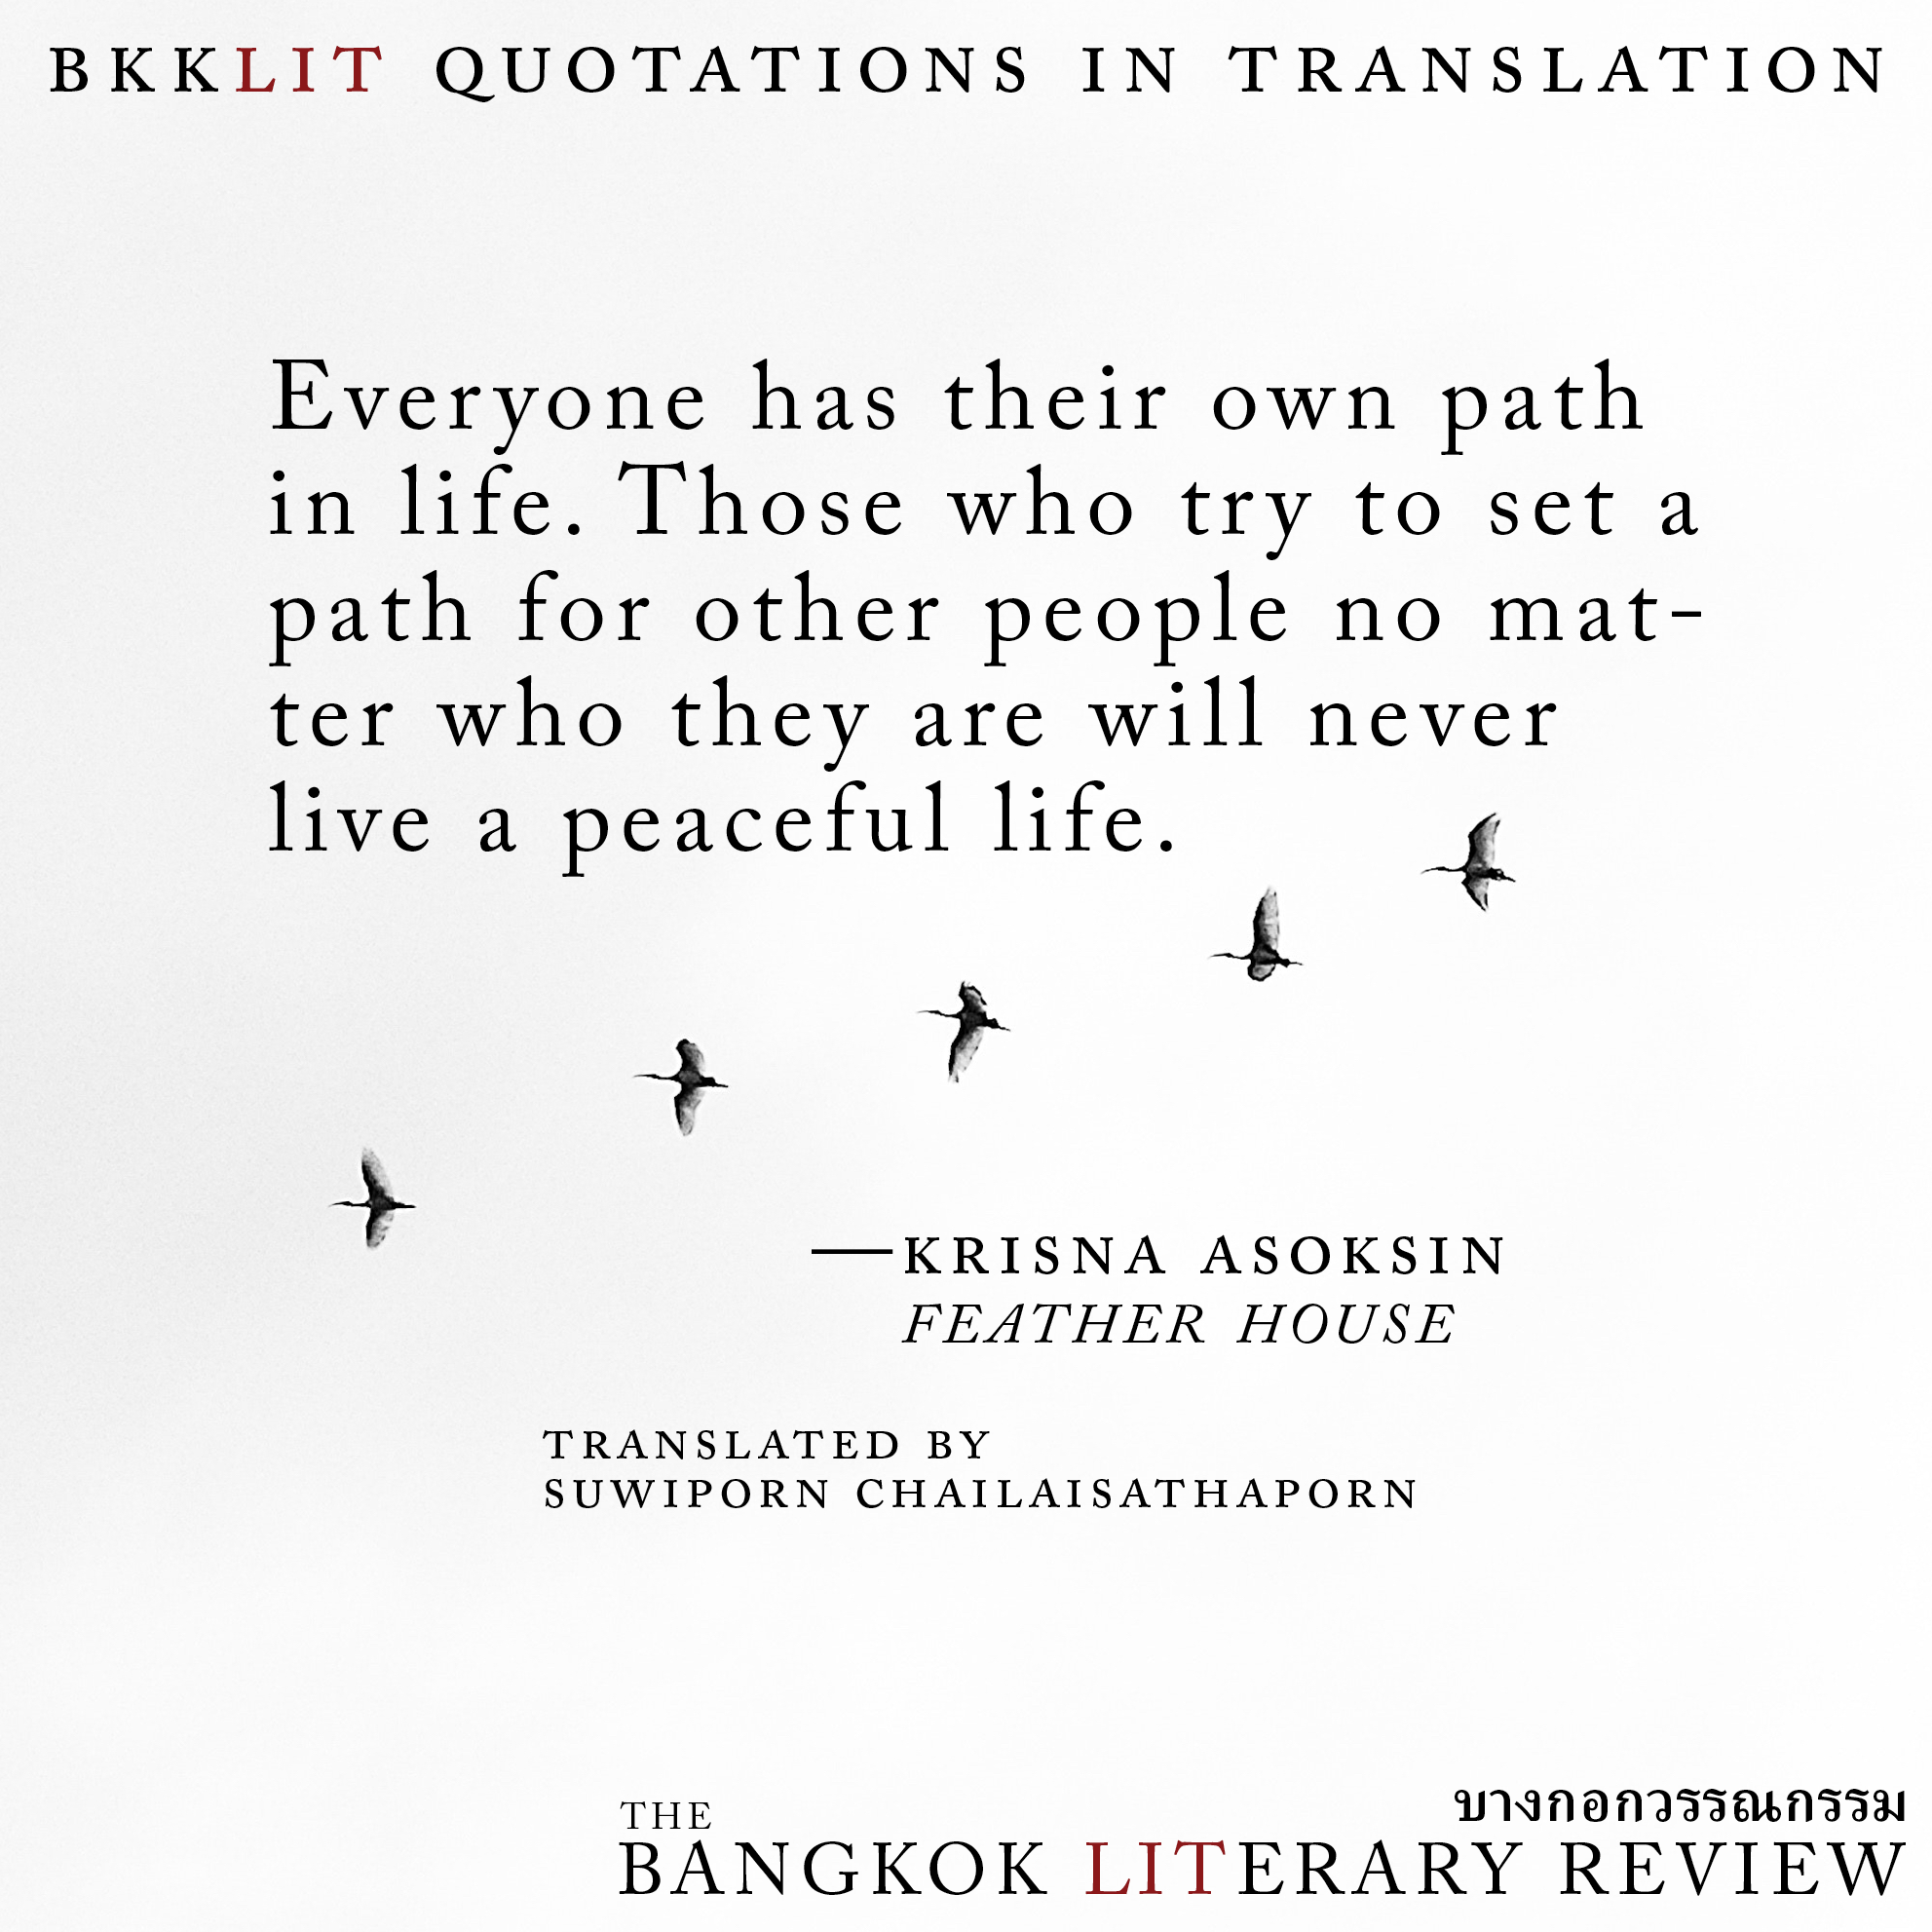 bkklit quotations in translation 05 the bangkok literary review